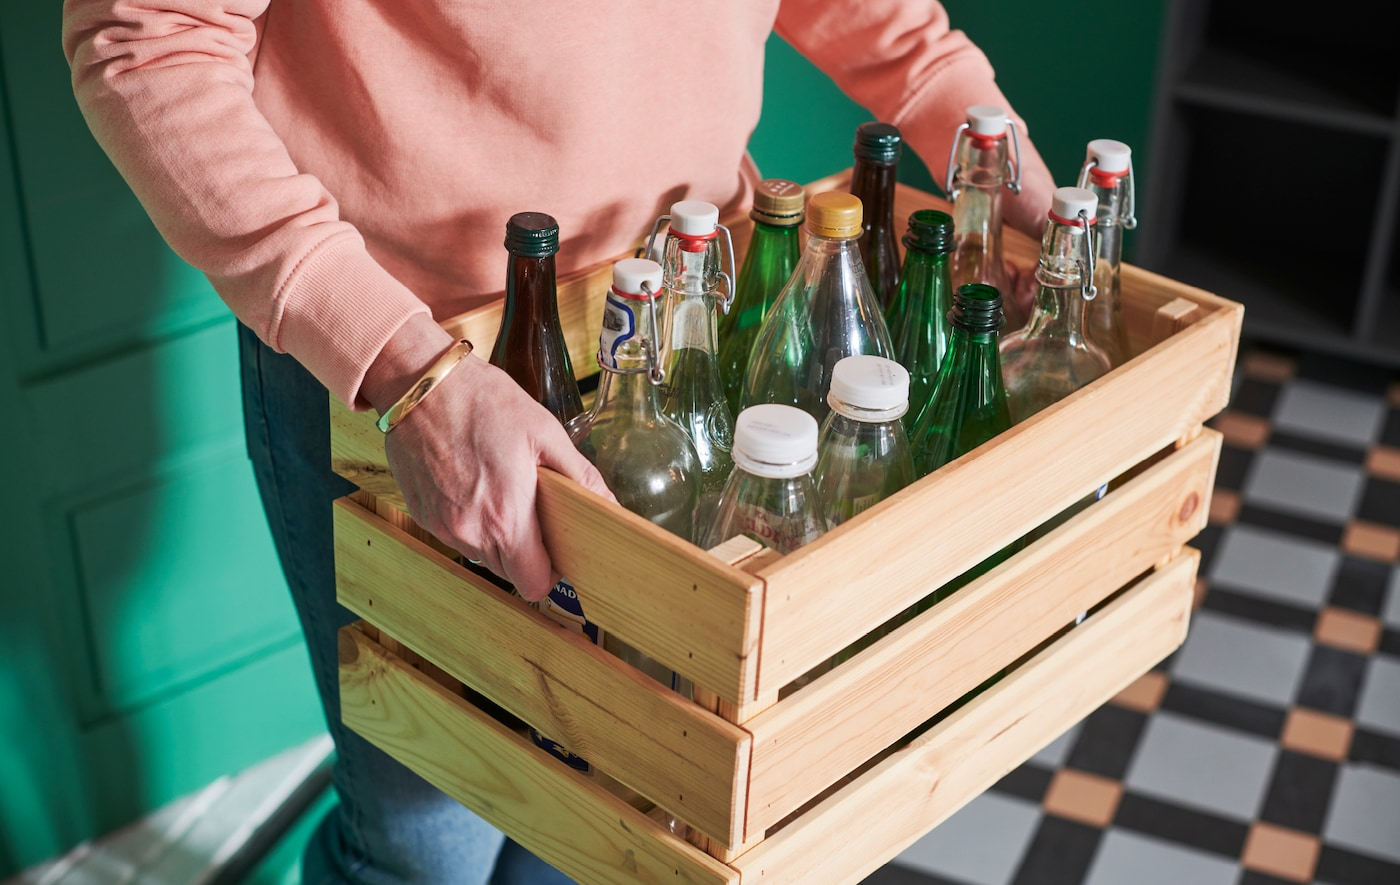 Person moving through a hall carrying a KNAGGLIG wooden crate filled with a variety of glass and plastic bottles.